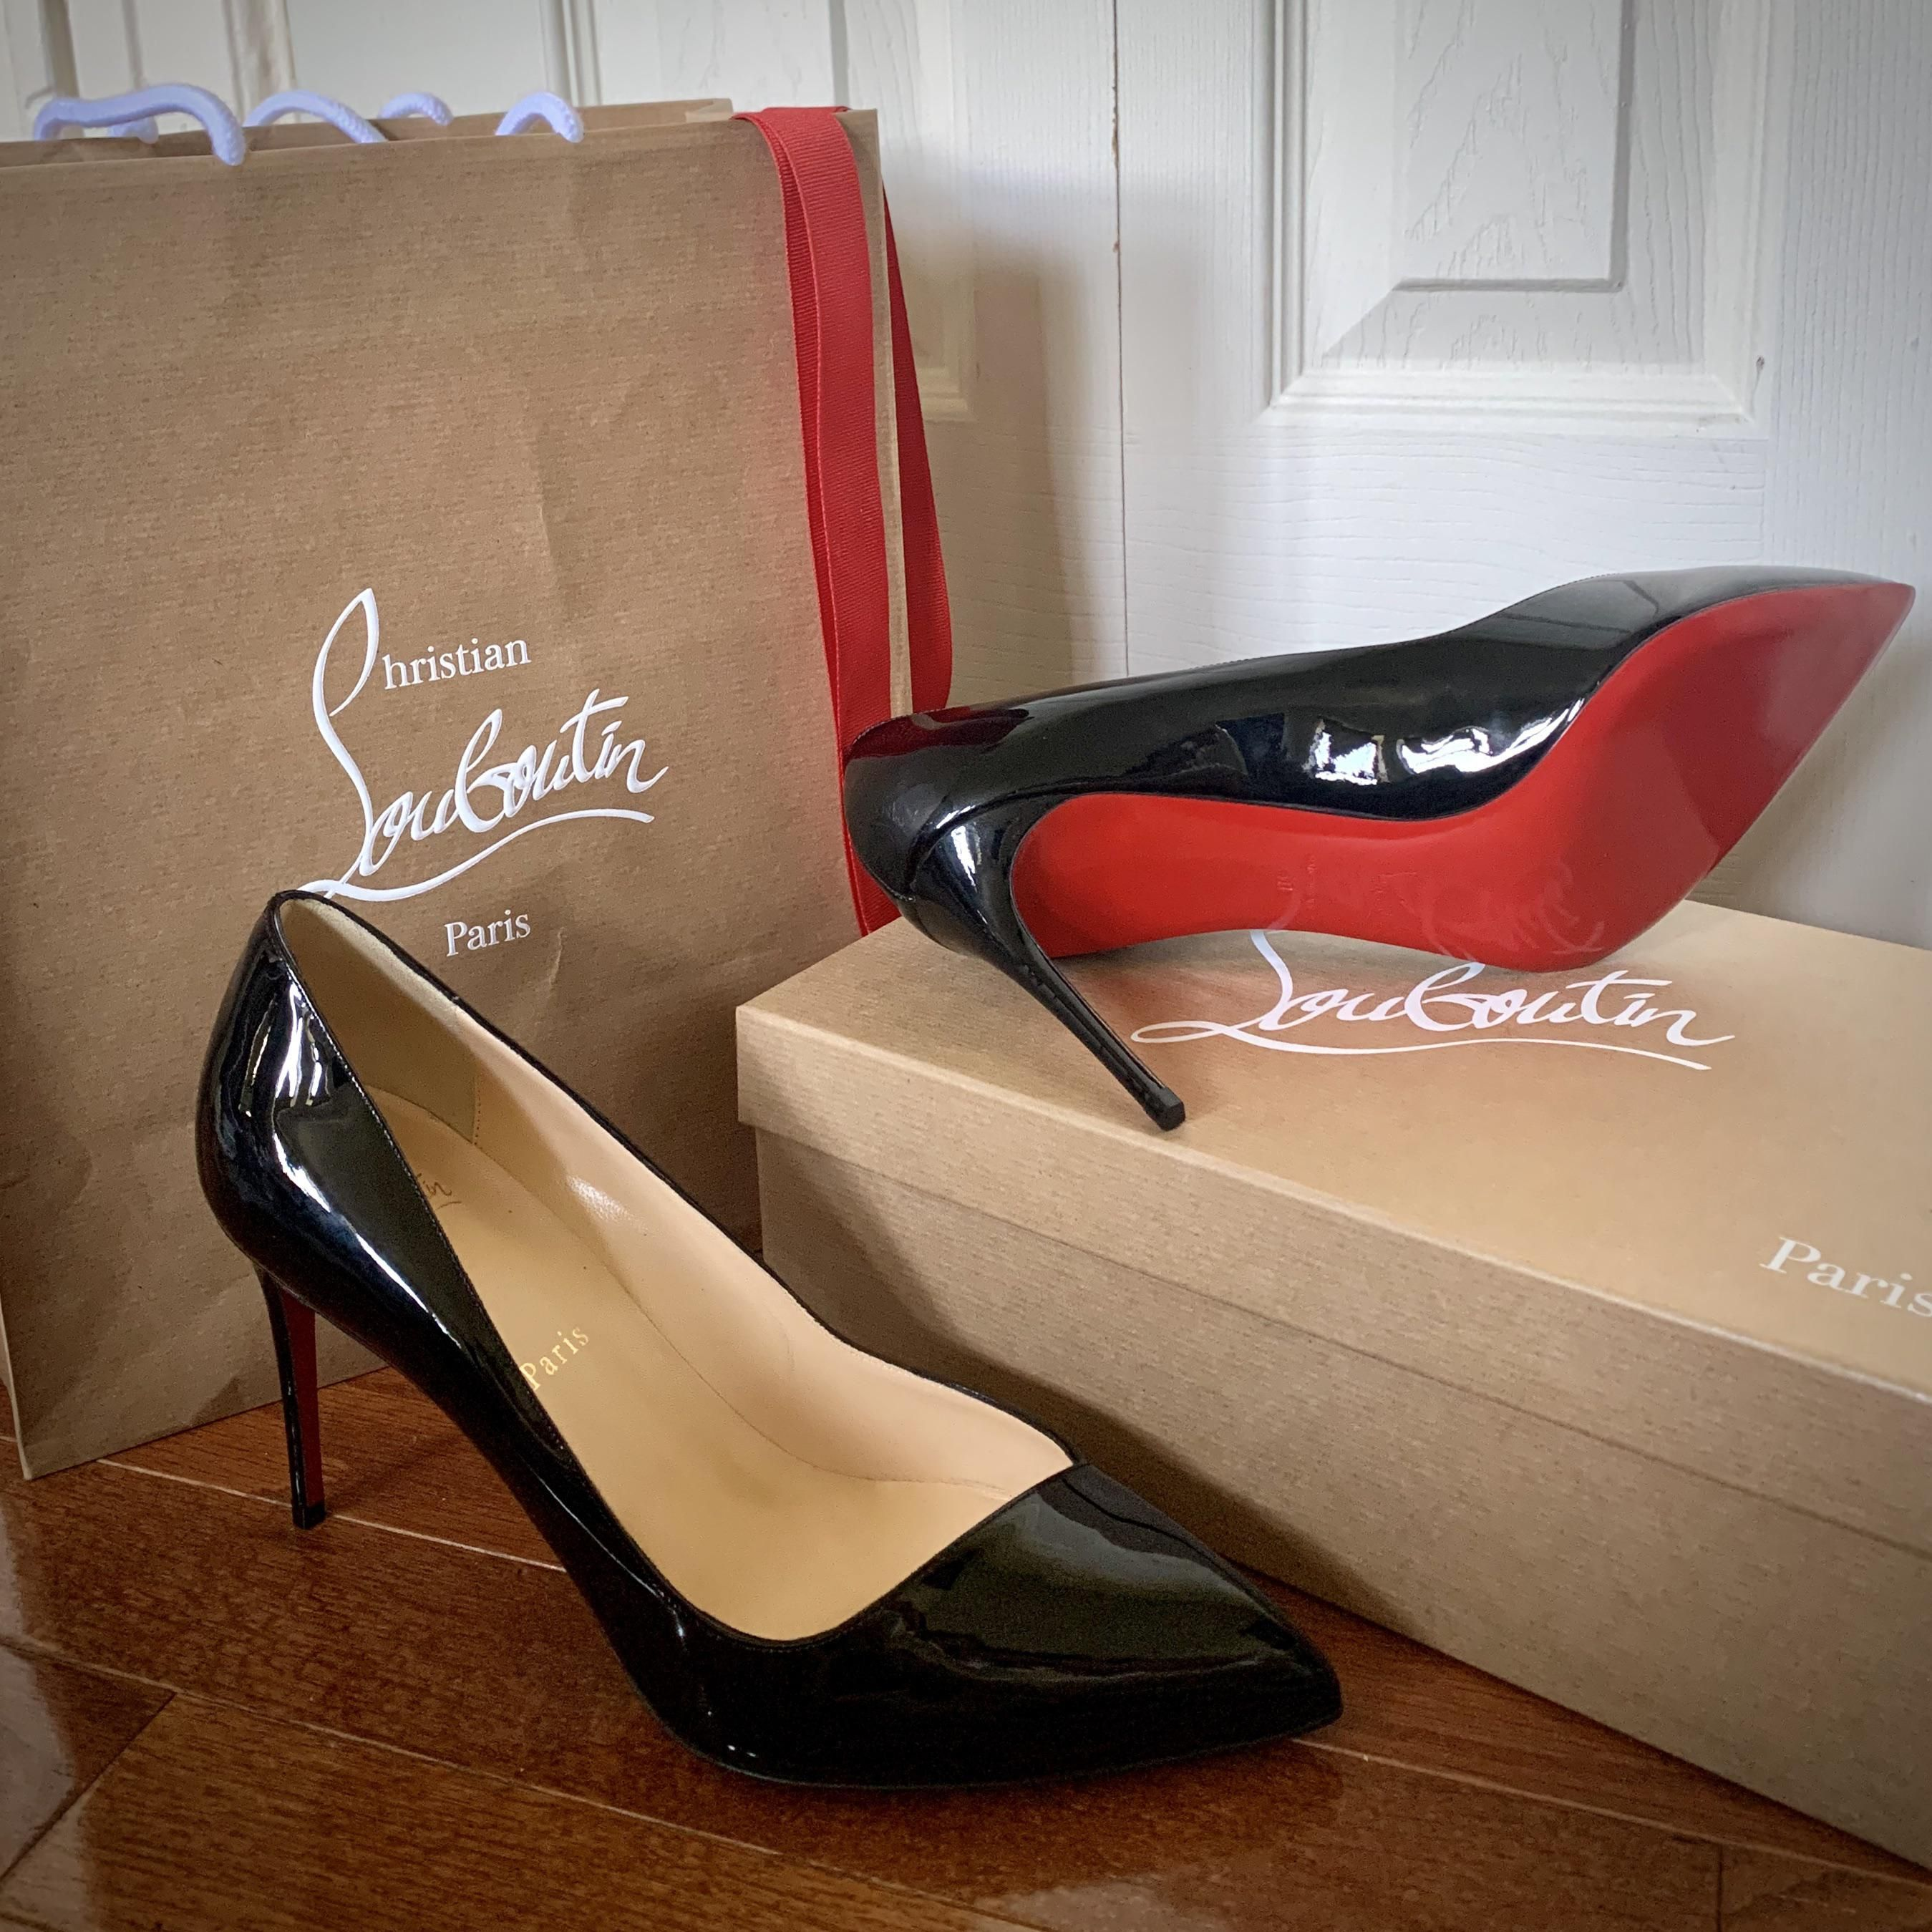 I got my first pair of Louboutin heels